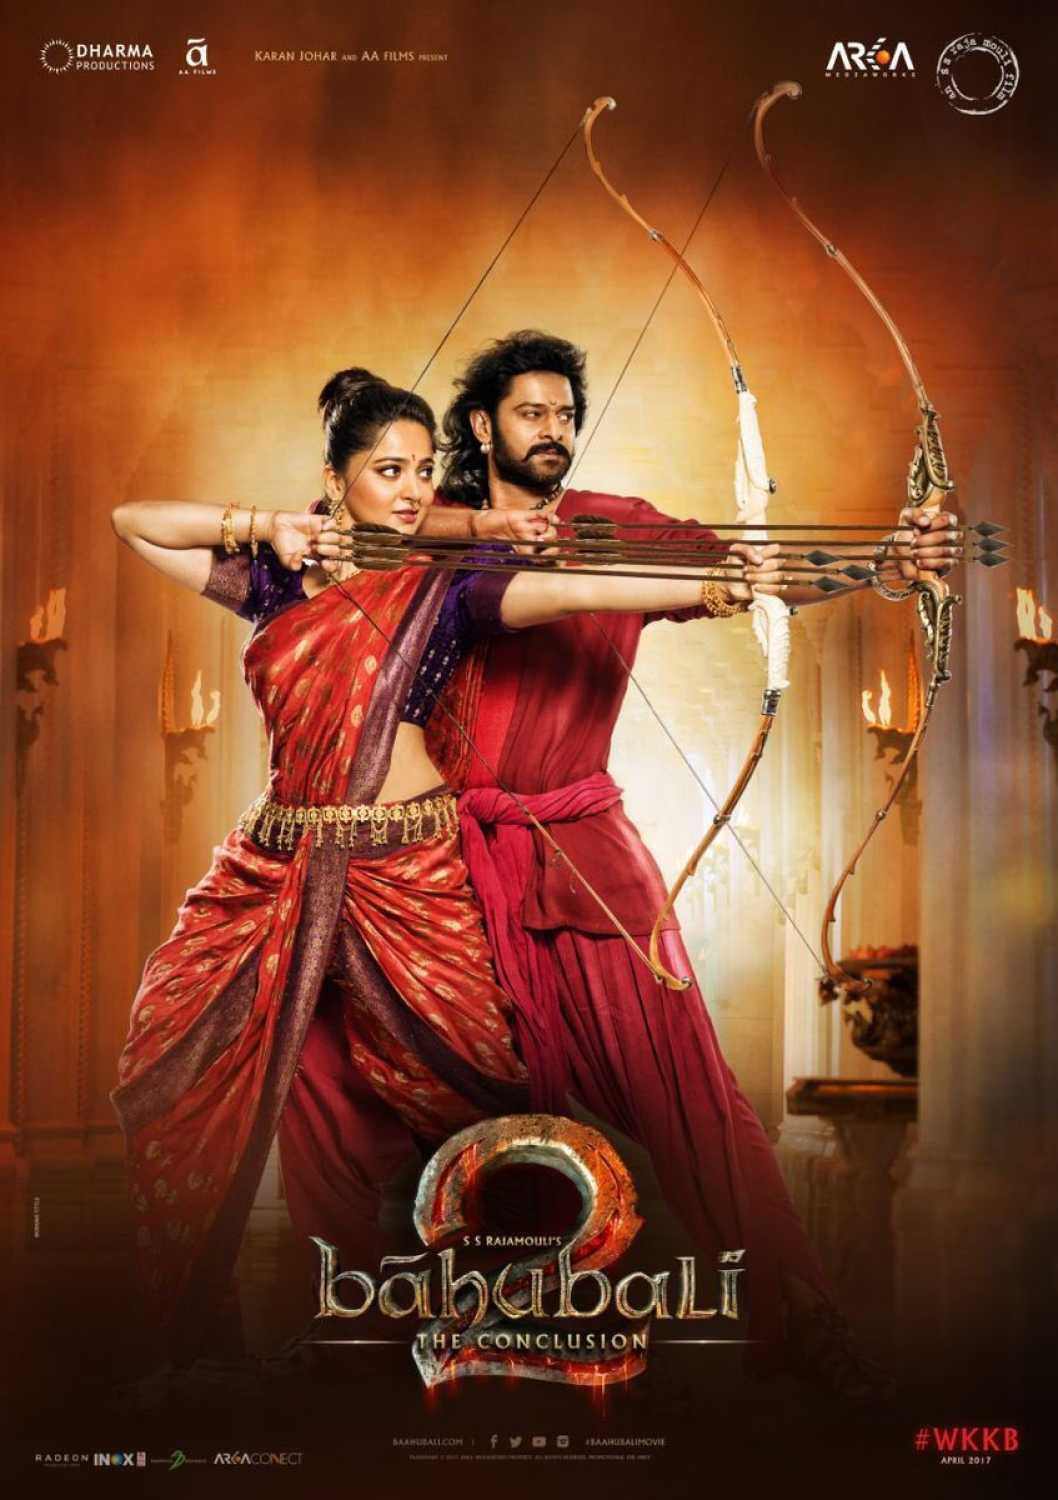 prabhas, anushka shetty on point in new bahubali: the conclusion posters